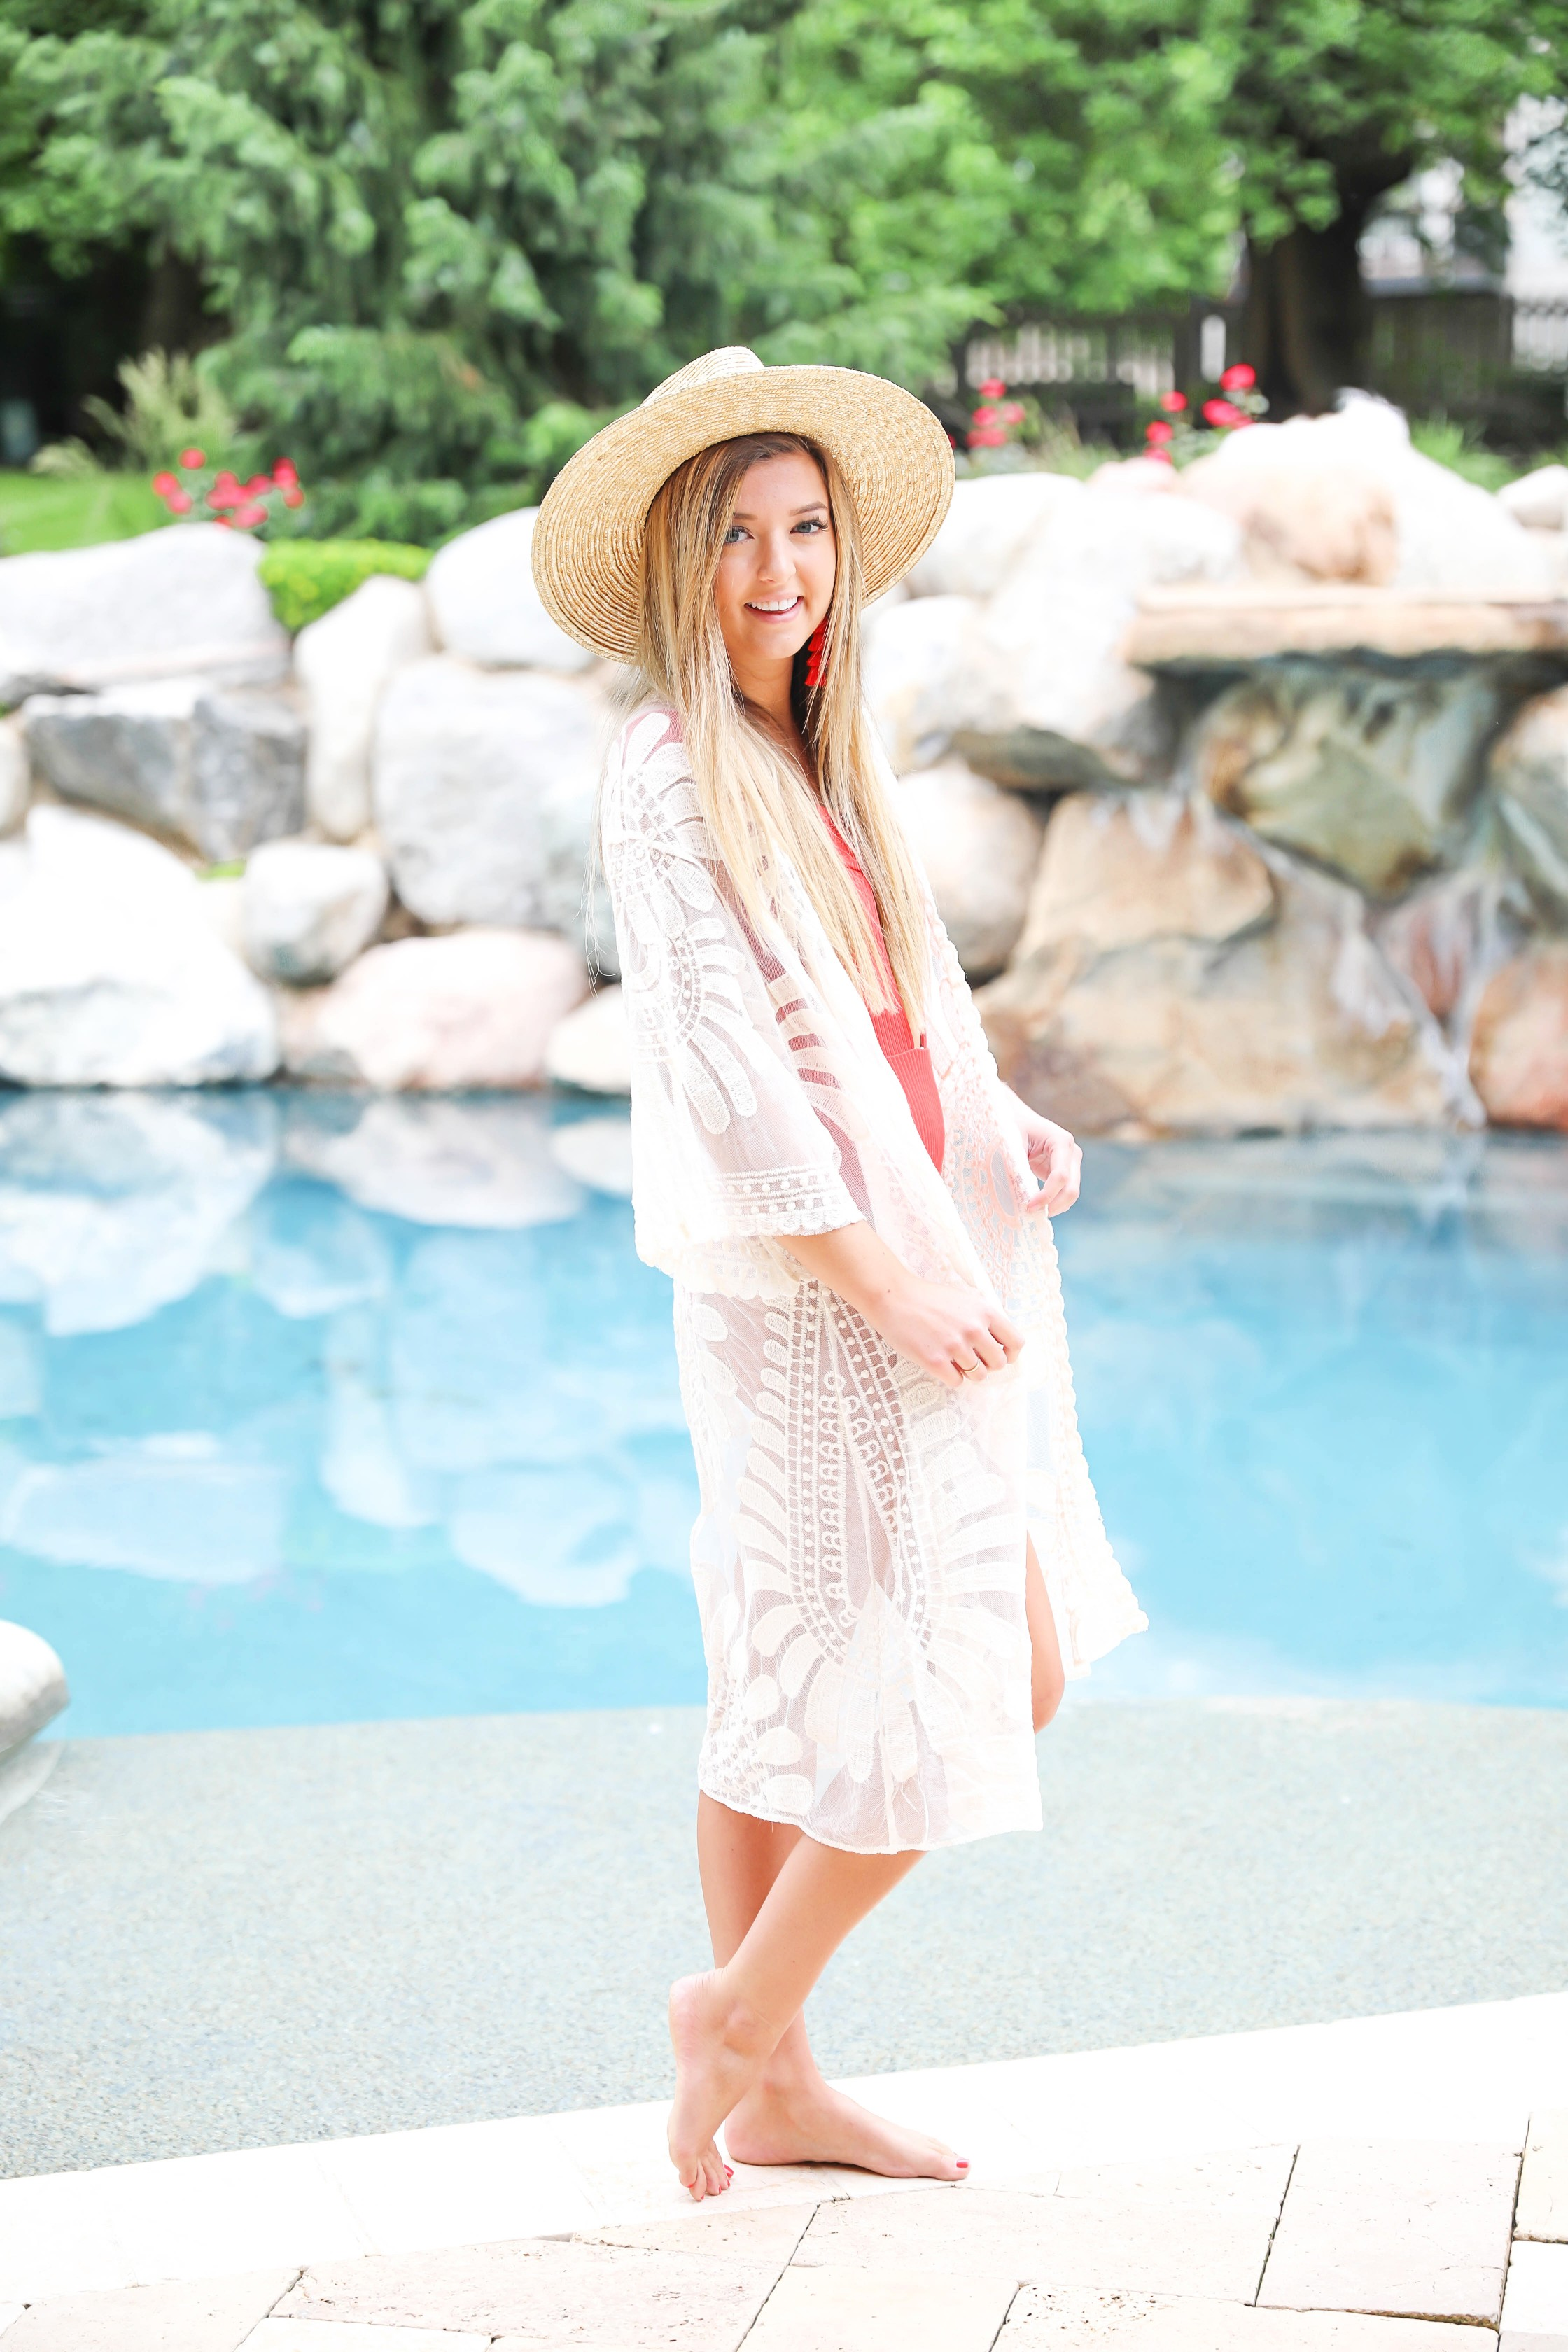 Hot red one piece! This adorable suit is reversible and also comes in white, yellow, and black! I paired this with my sheer mesh woven lace kimono and wide brim straw hat! Summer look by the pool! Details on fashion blog daily dose of charm by lauren lindmark